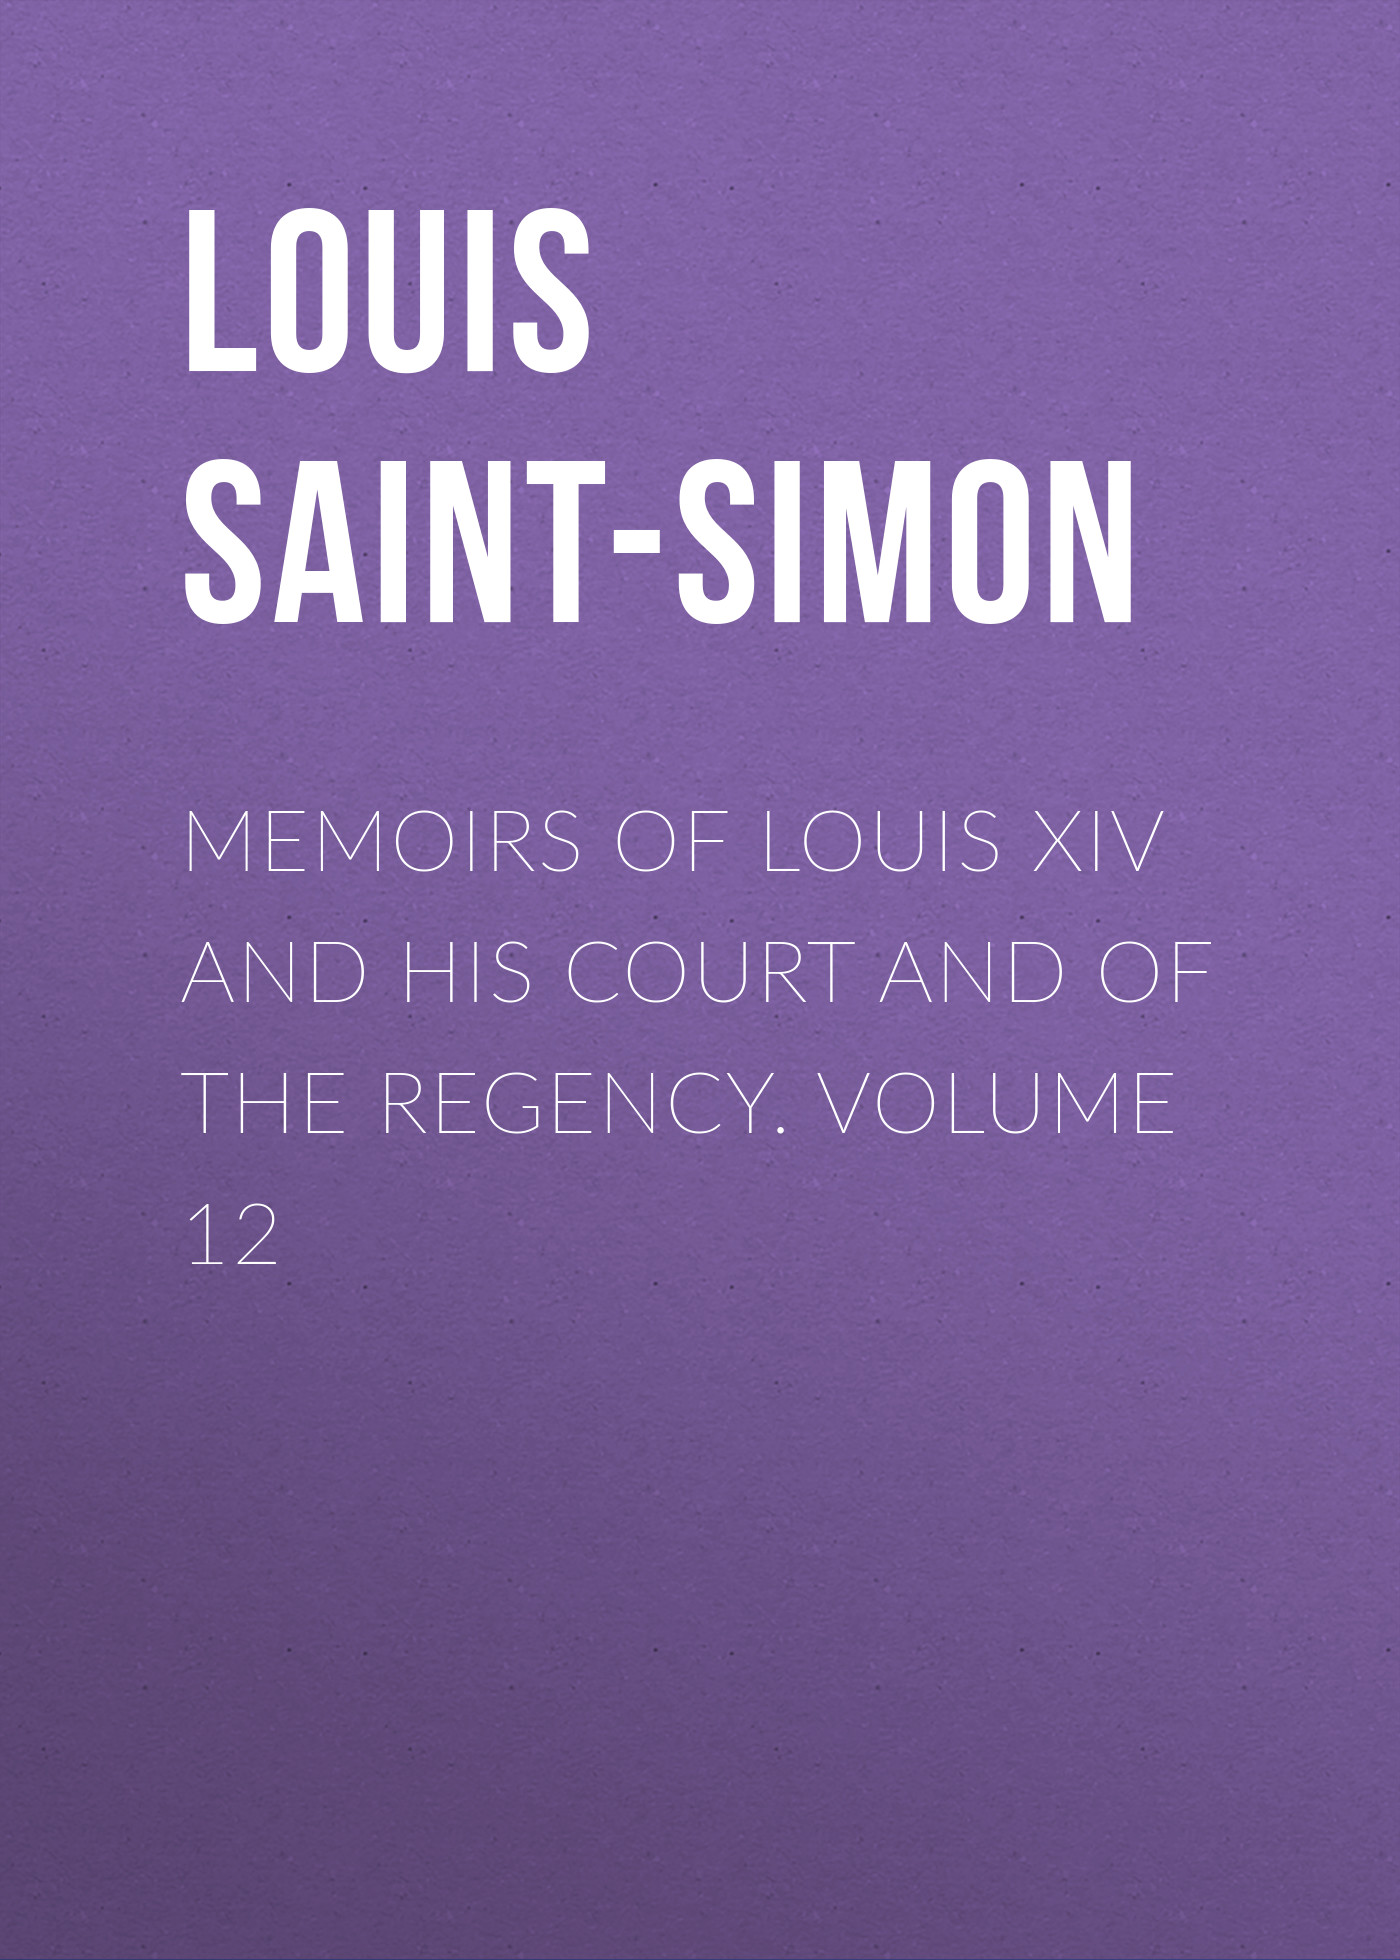 Фото - Louis Saint-Simon Memoirs of Louis XIV and His Court and of the Regency. Volume 12 jules marcou life letters and works of louis agassiz volume i